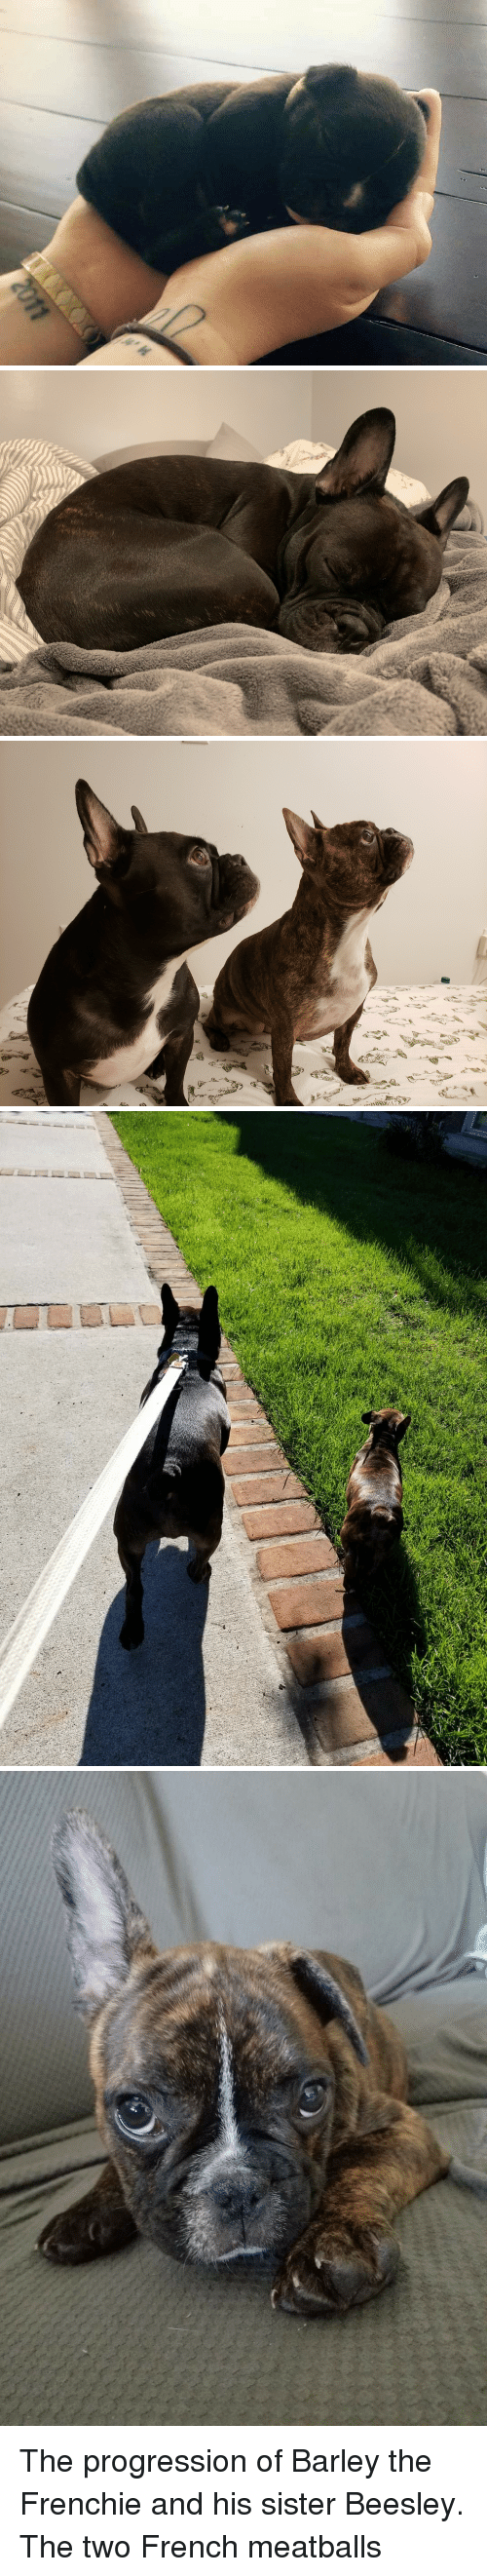 Frenchie: The progression of Barley the Frenchie and his sister Beesley. The two French meatballs